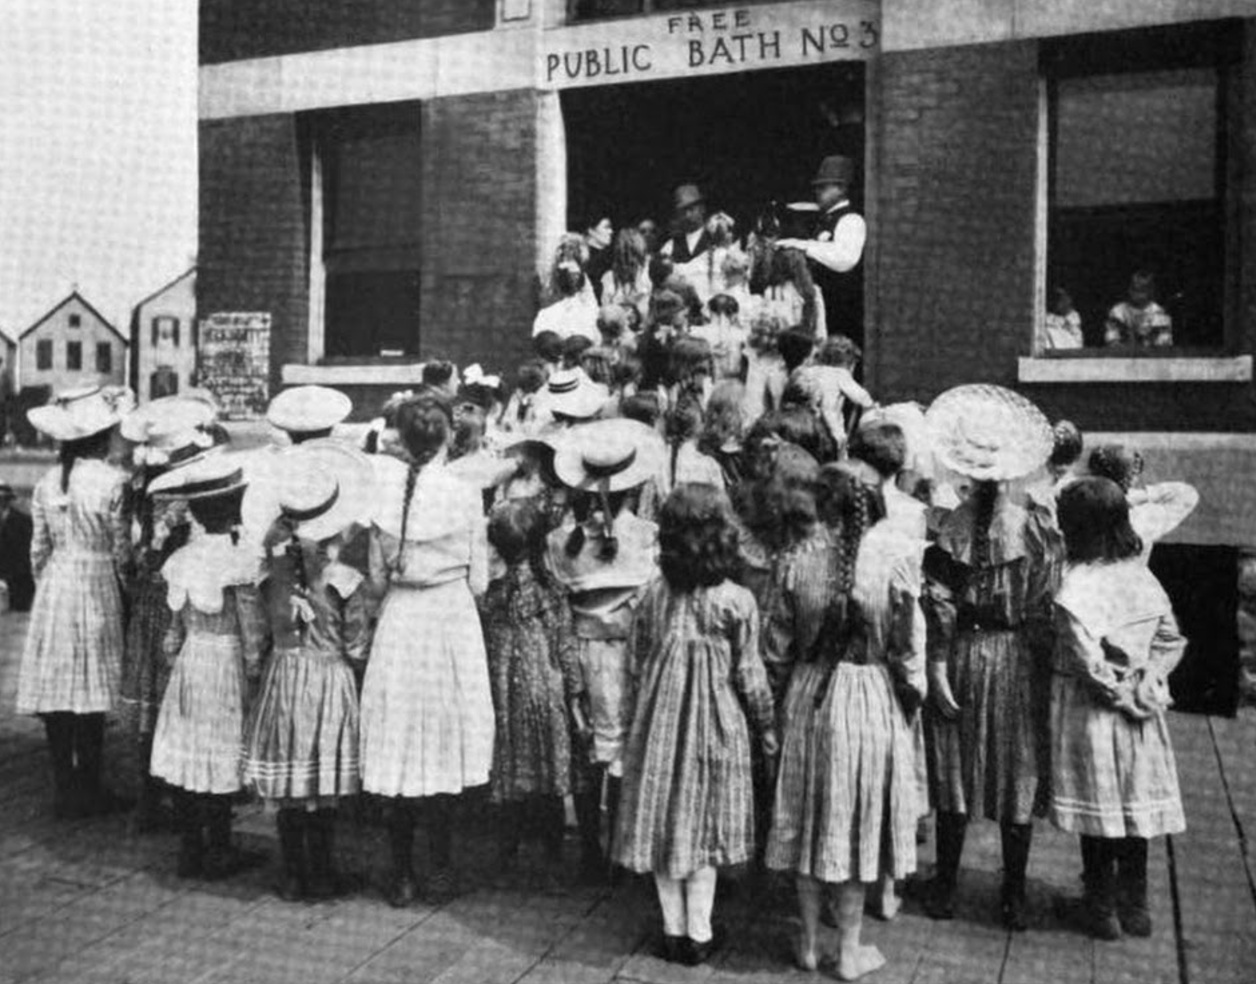 Girl's hour at William R. Mayor bathhouse. (Courtesy Chicago Health Department)